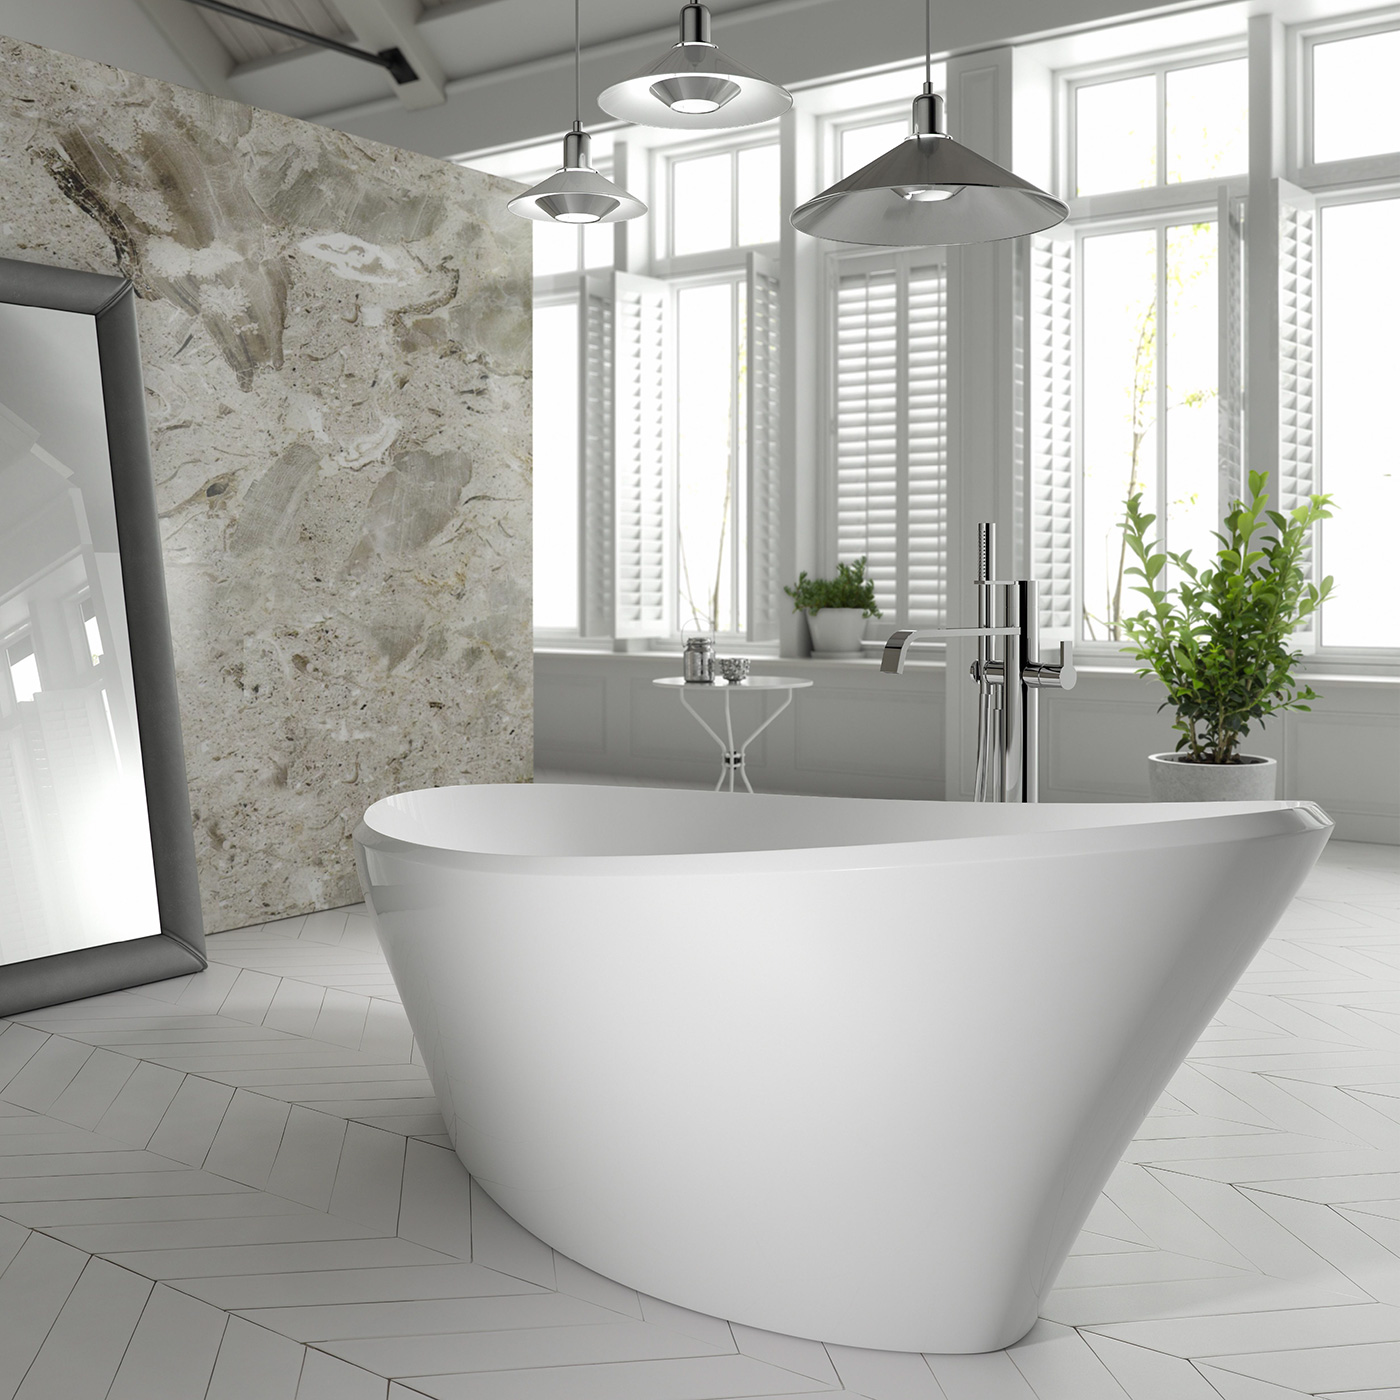 Photo of our 'Cara' Bath